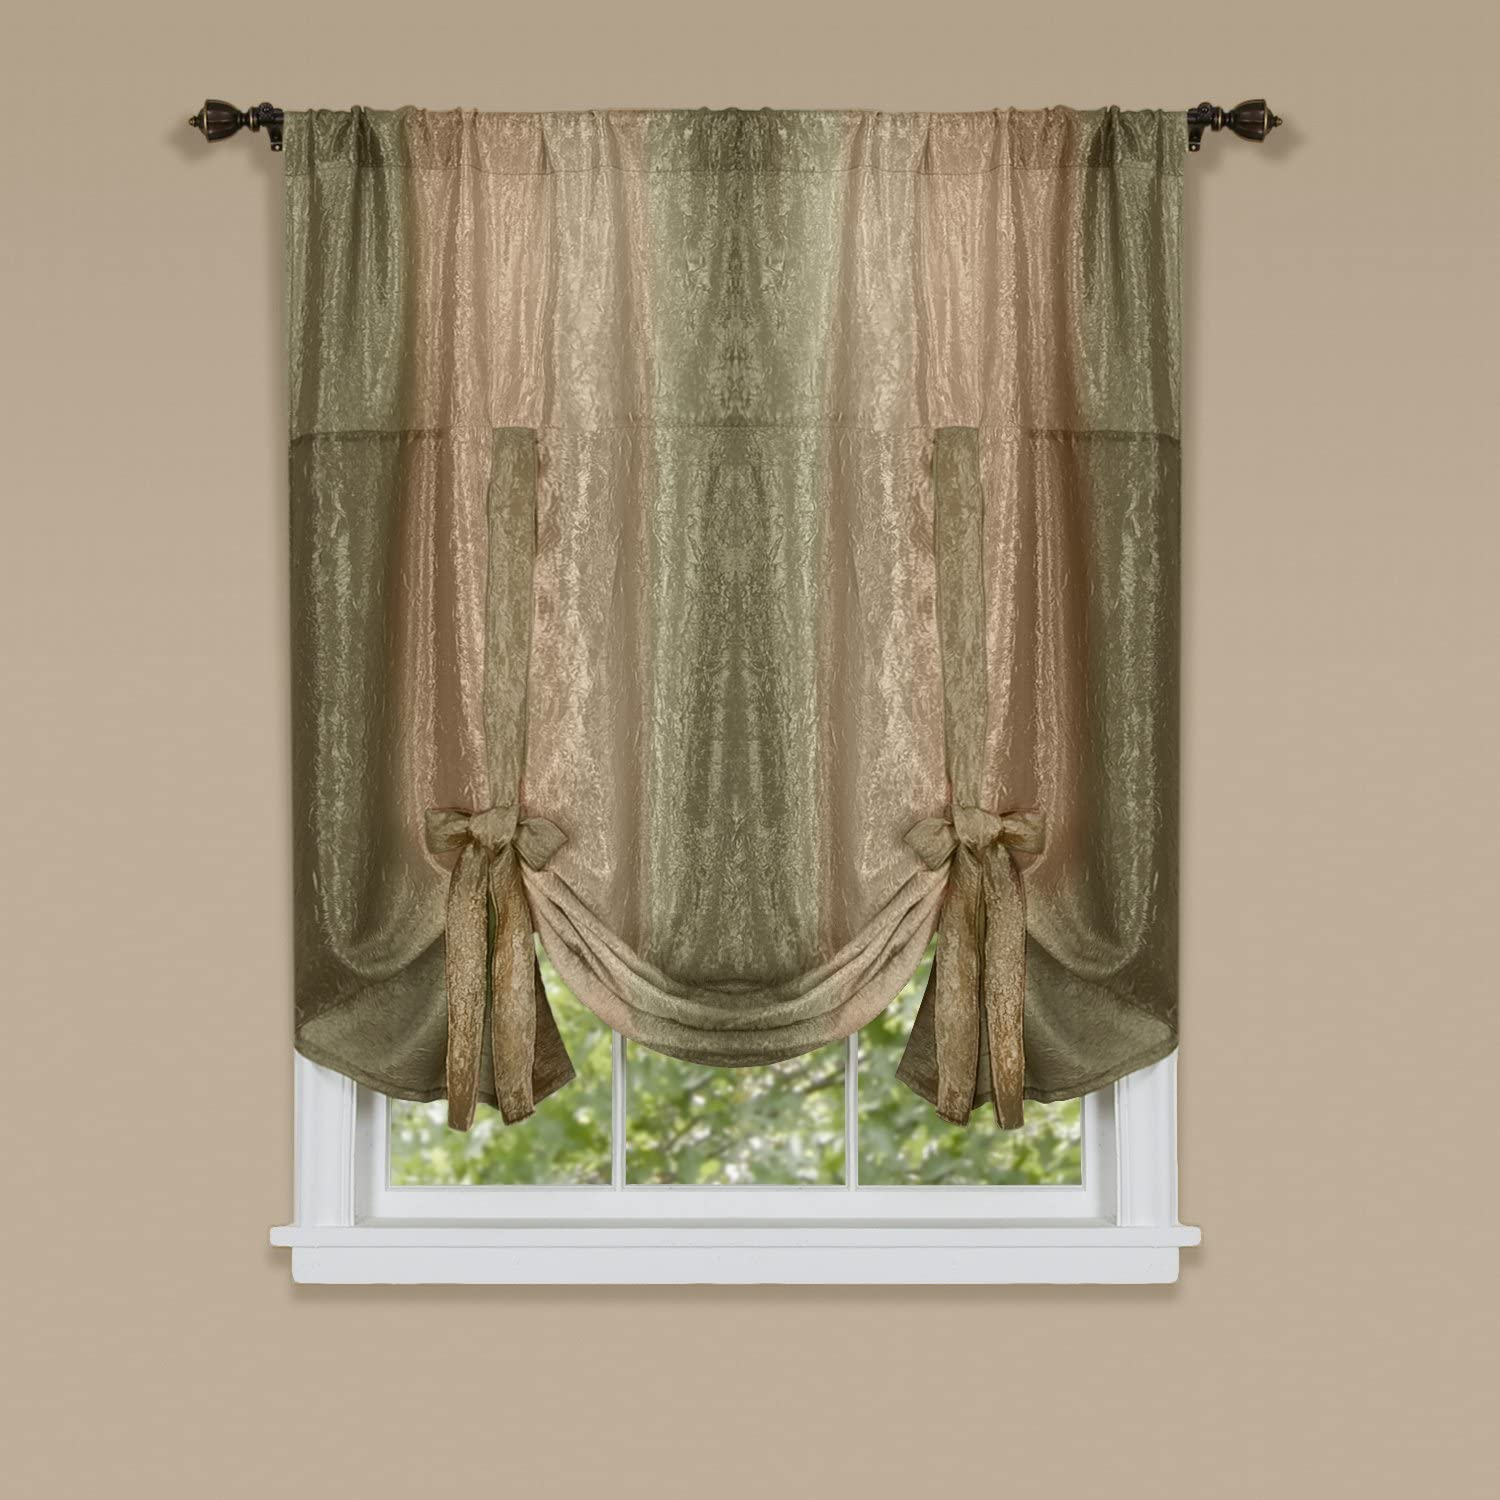 "Achim Home Furnishings Ombre Tie up Shade Window Curtain, 50"" x 63"", Earth"